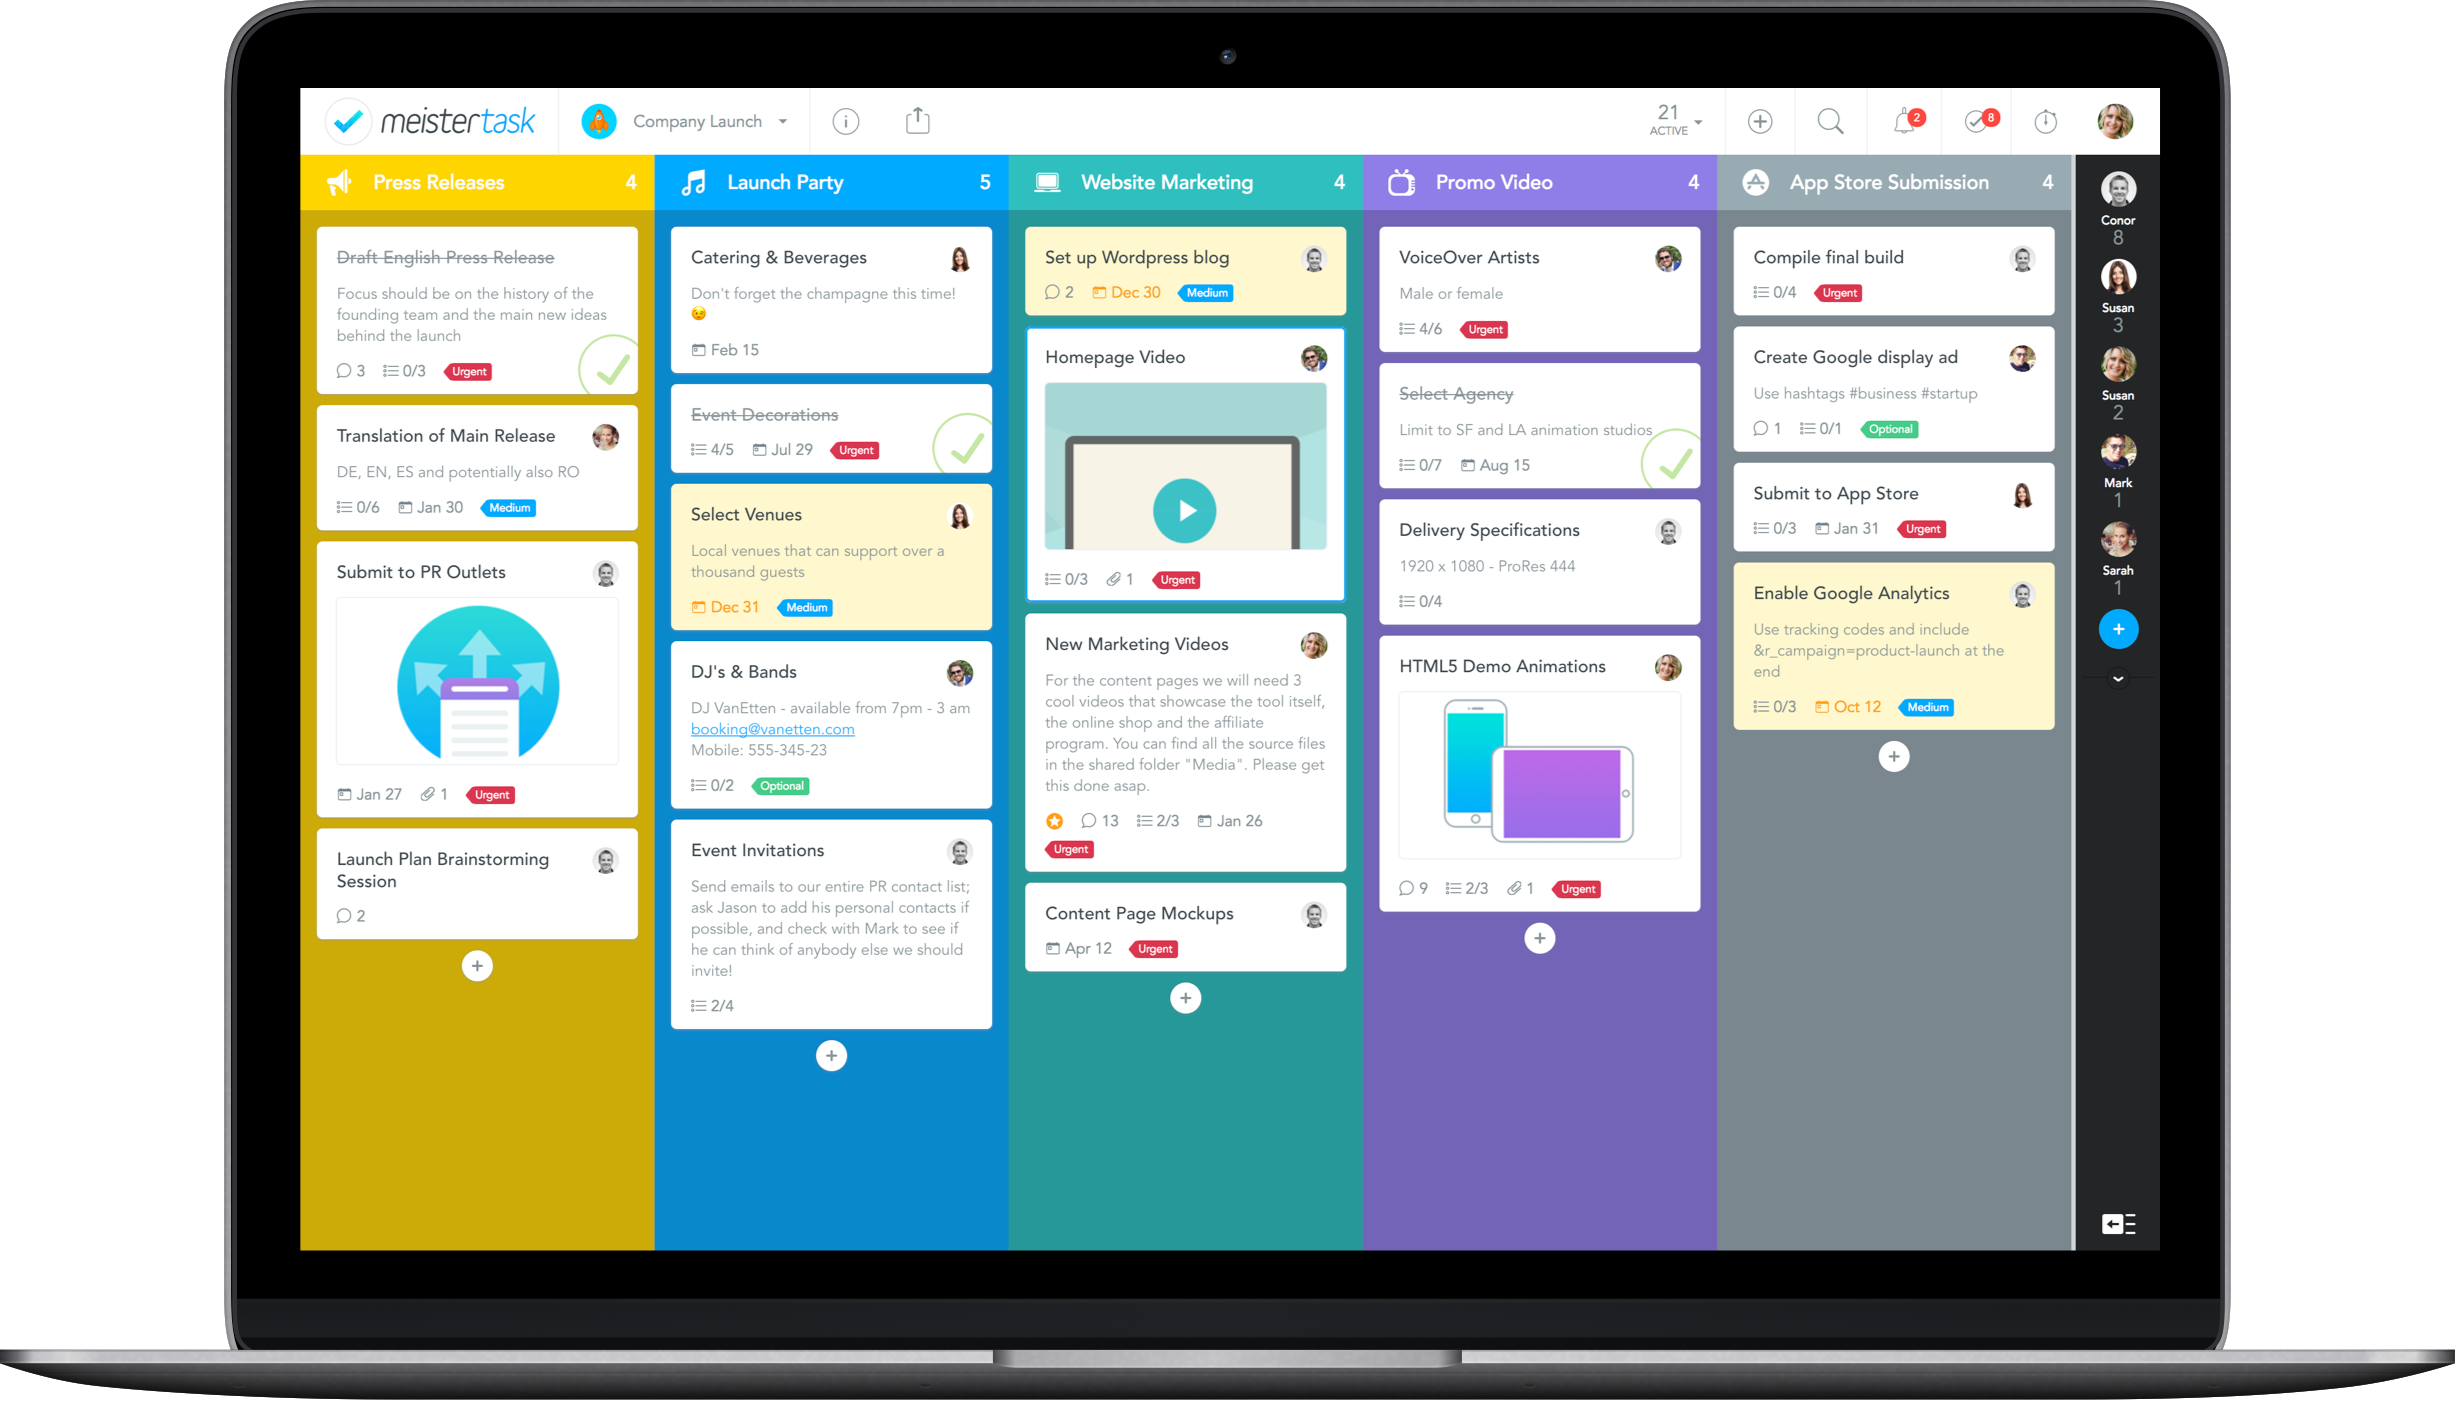 MeisterTask Business Zapier Automations project board